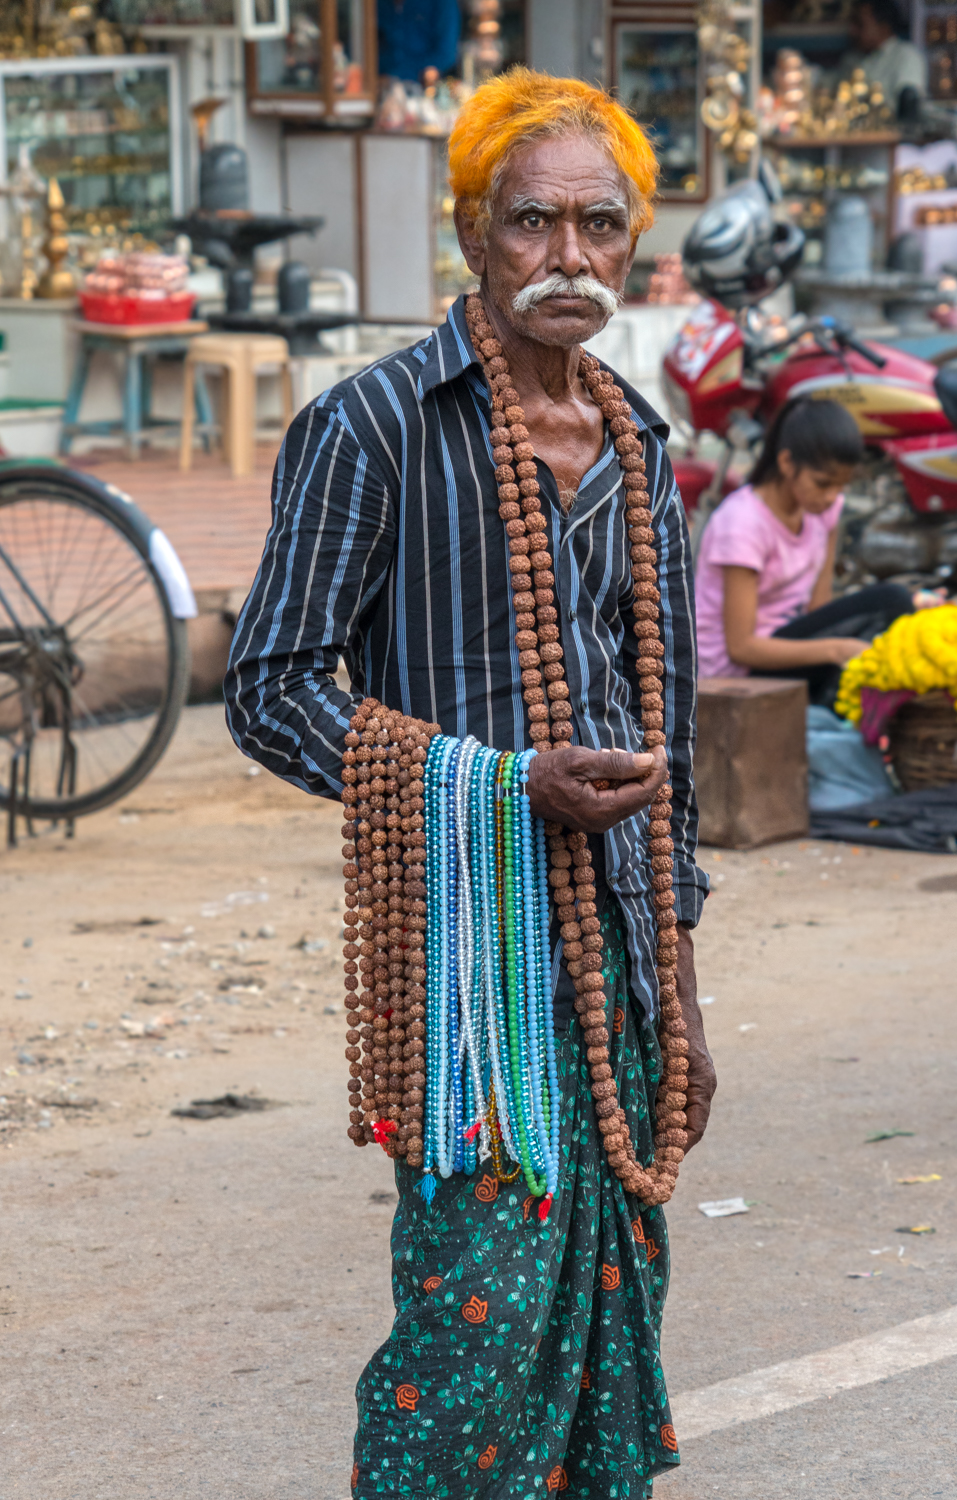 On the street of Varanasi